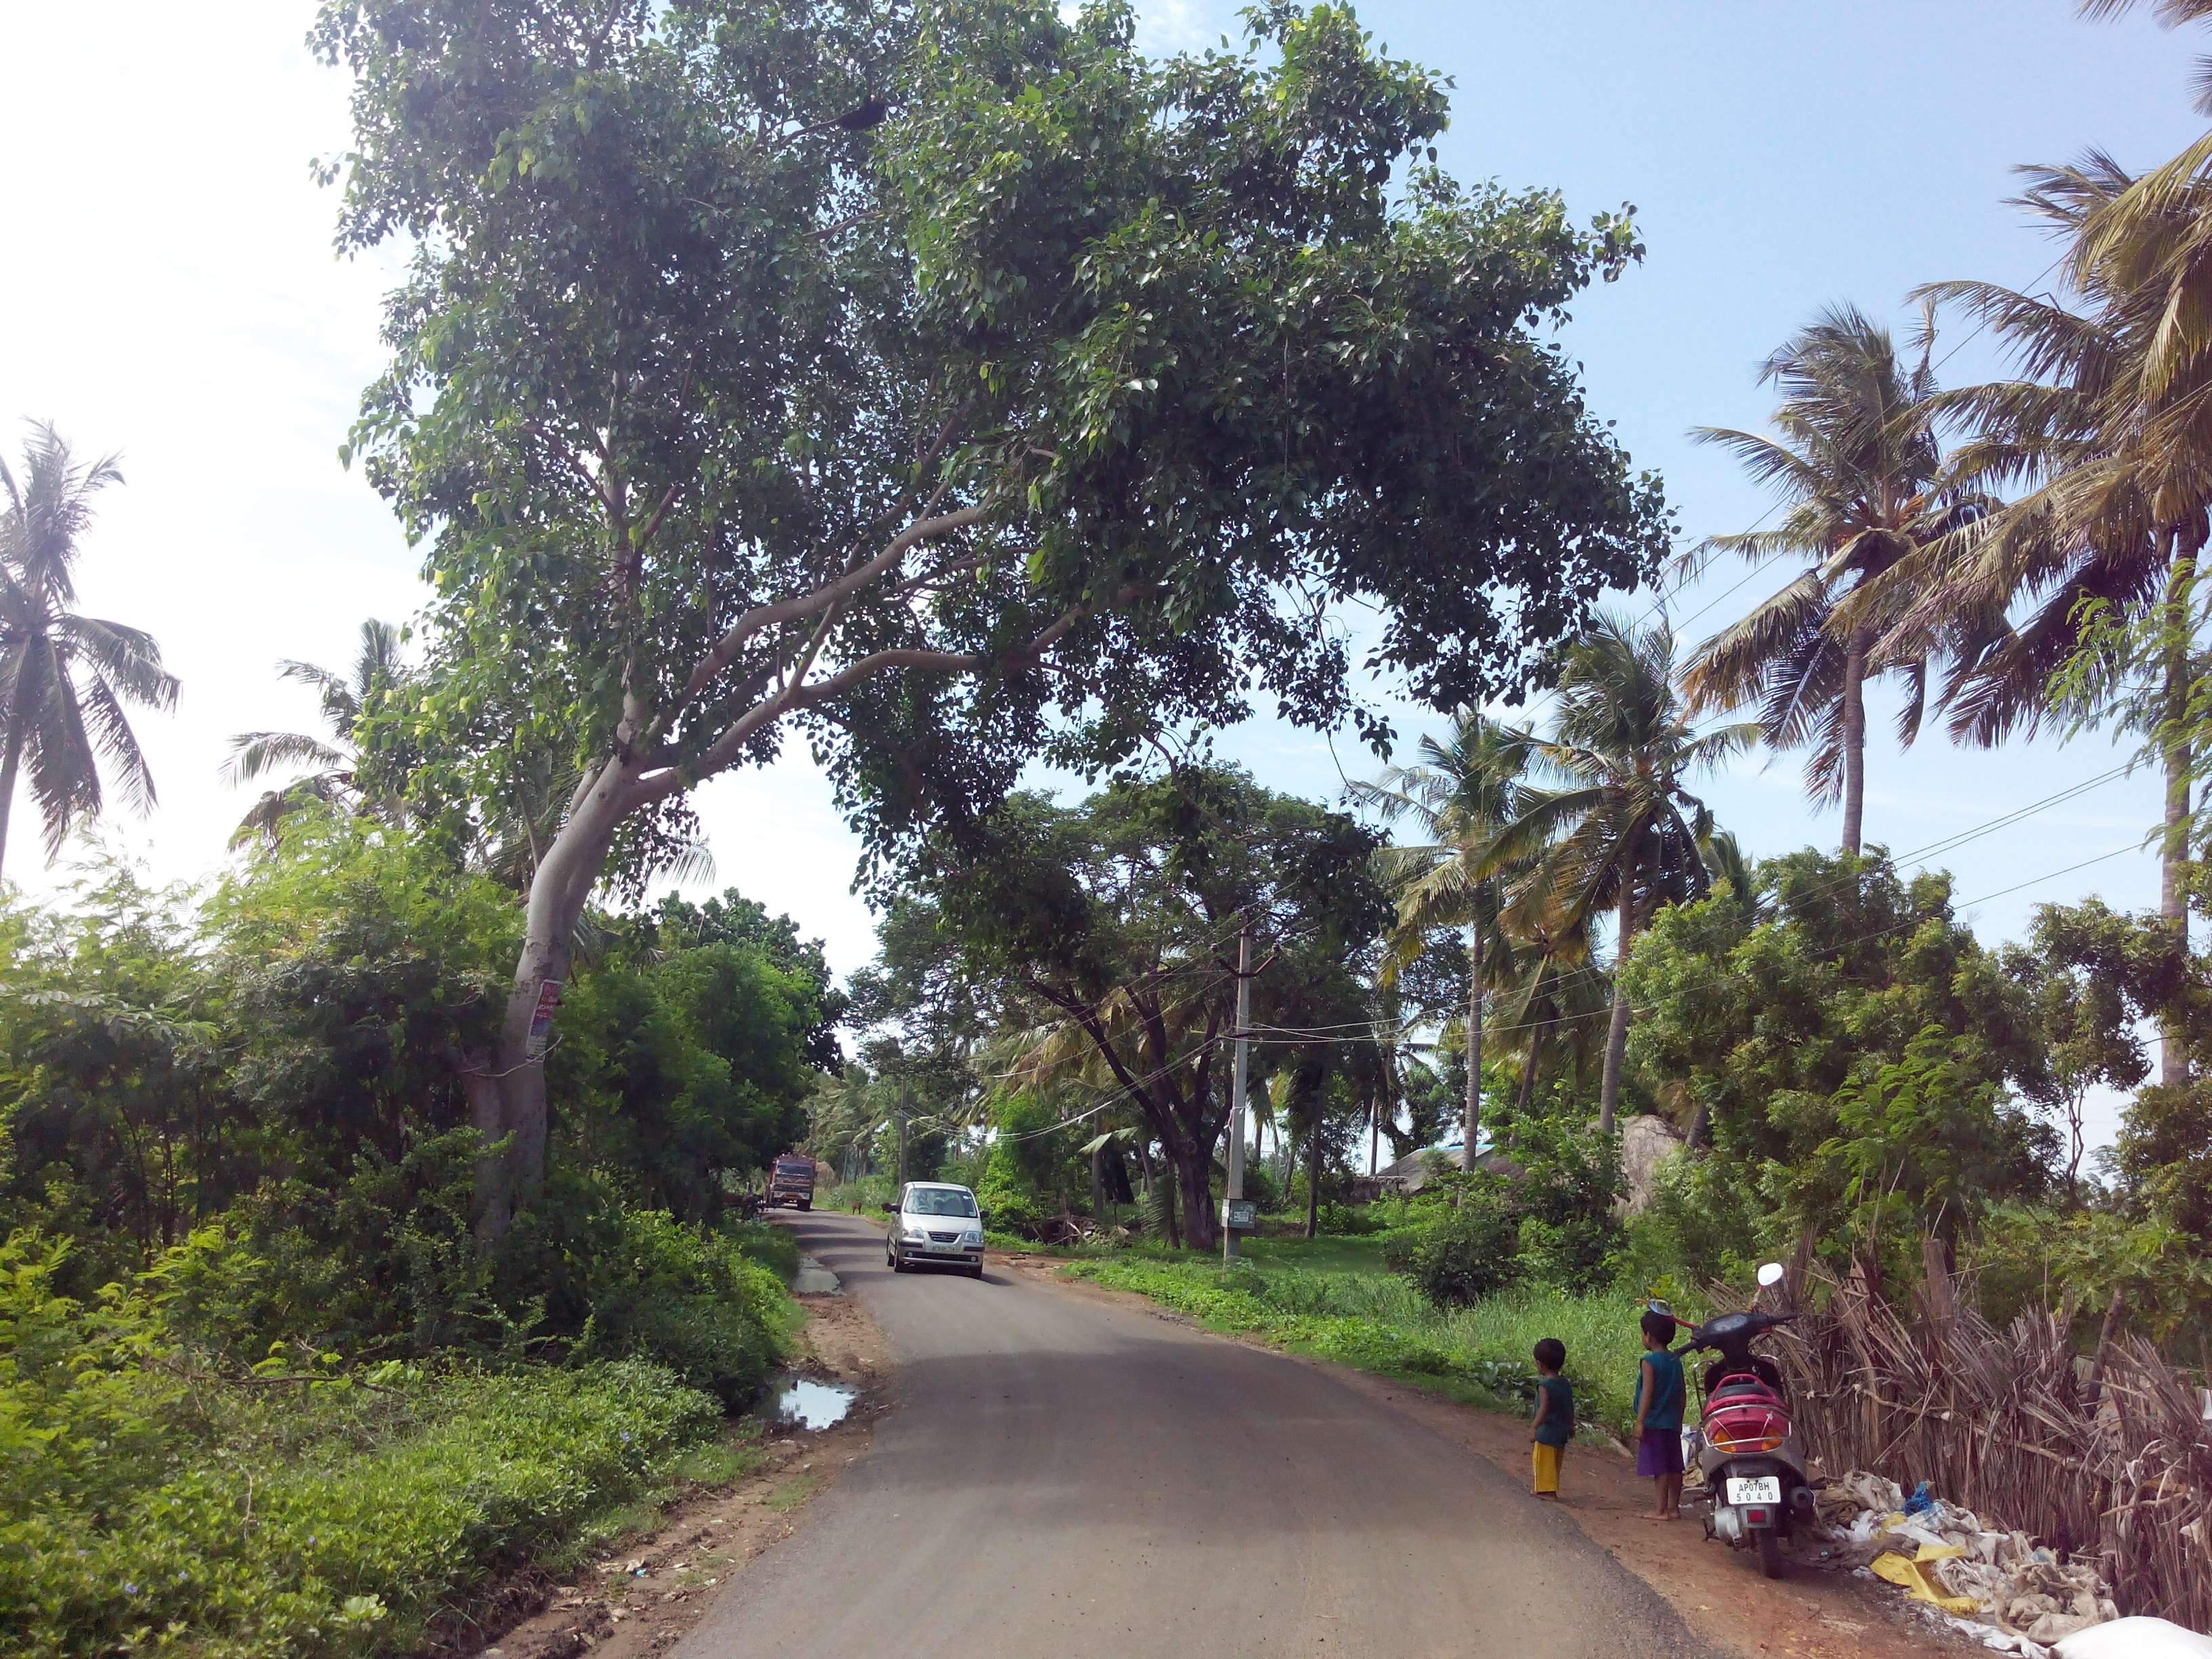 Putlacheruvu Main Road Near Sai Baba Temple